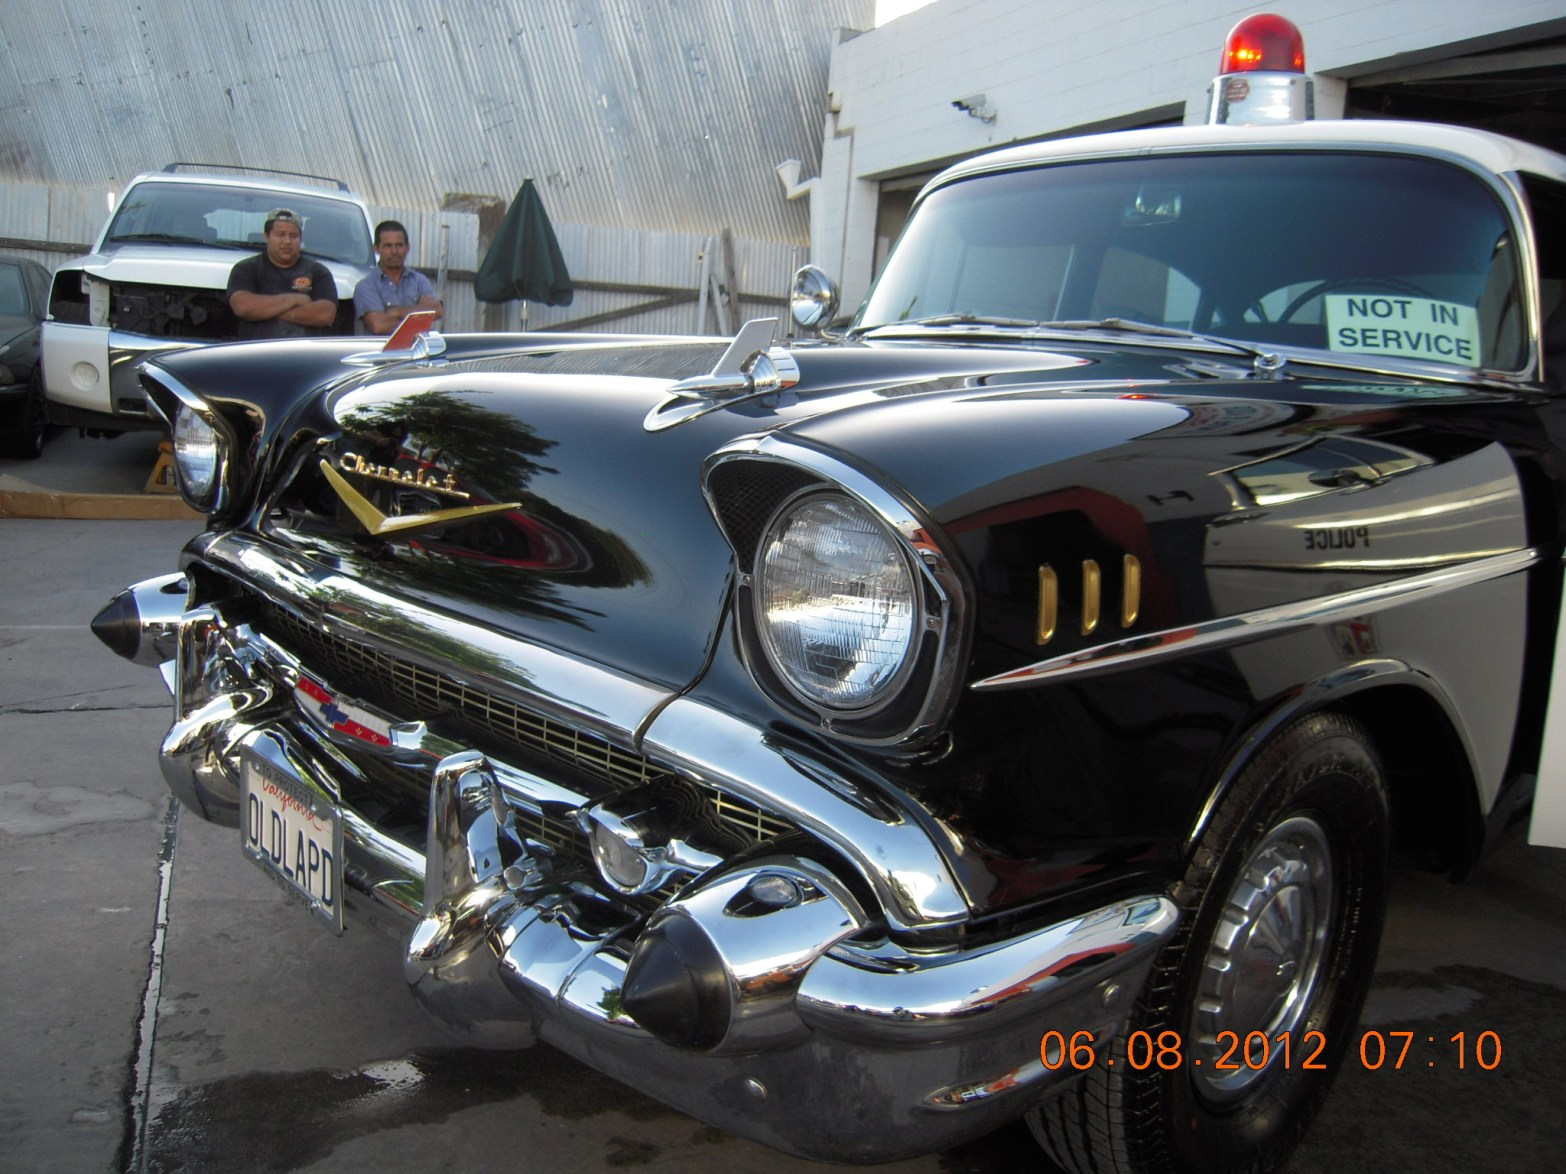 west-coast-body-and-paint-black-bellair-police-car-22